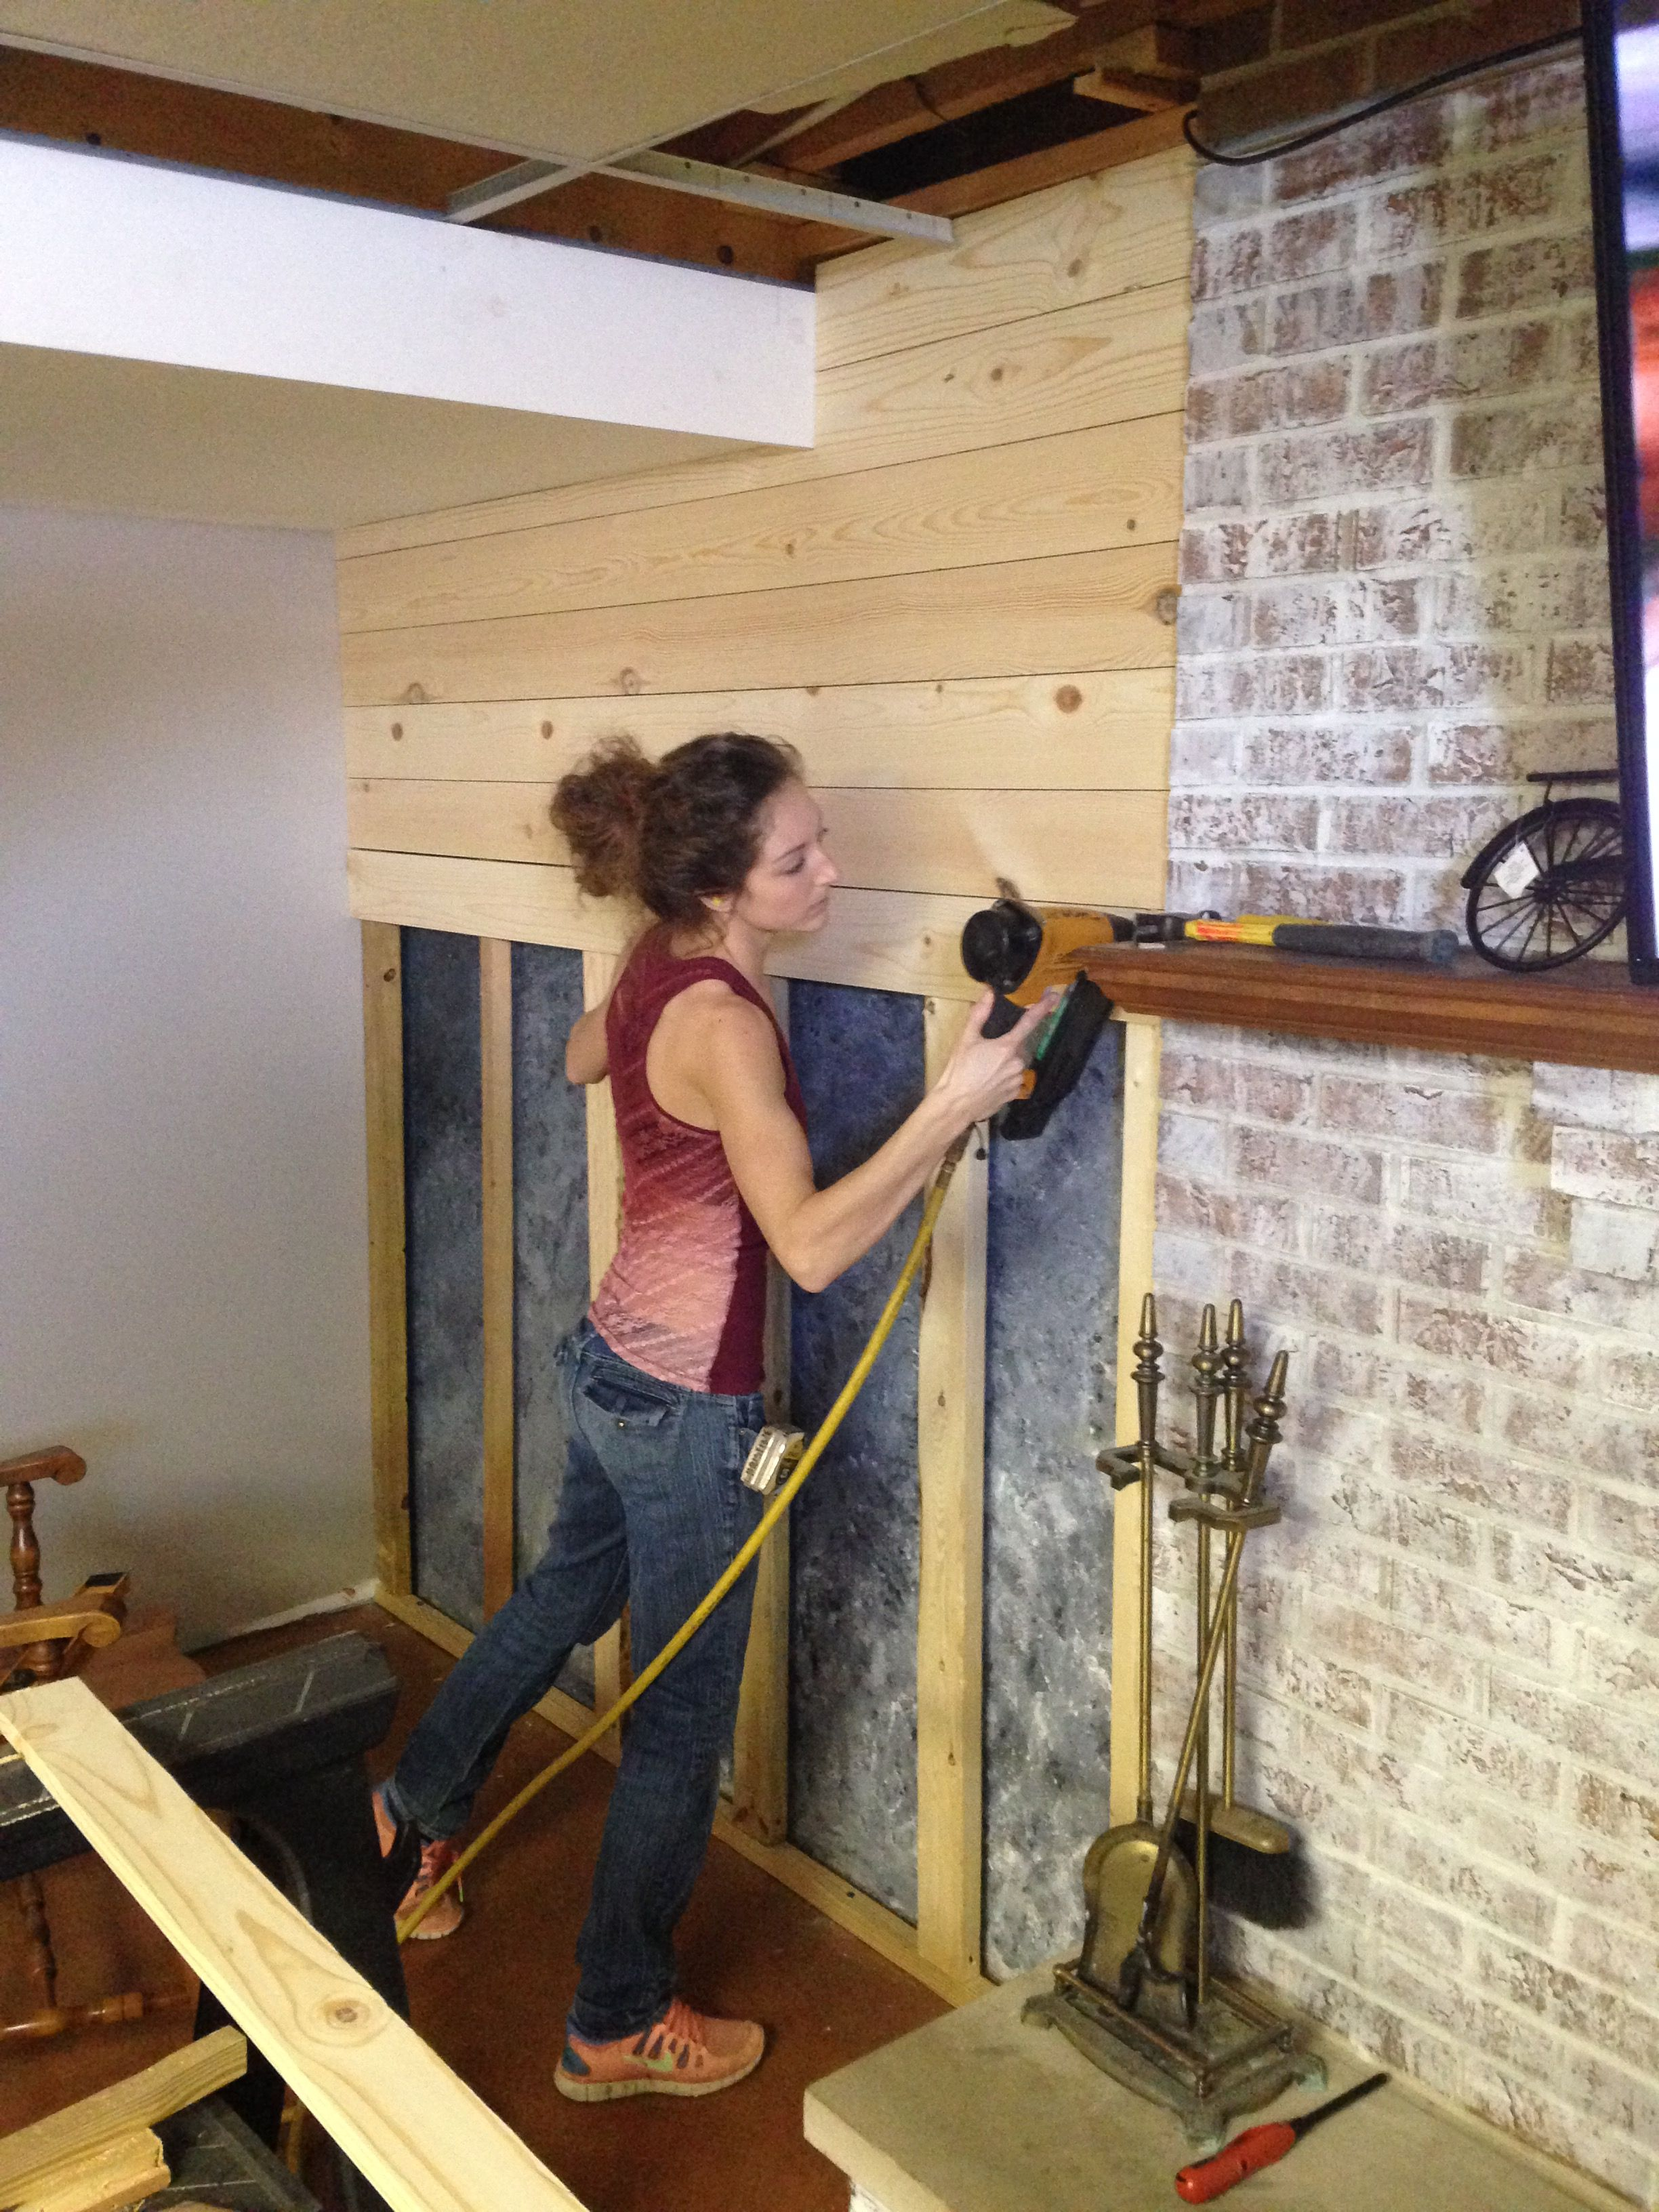 Getting Rid Of That Concrete Wall And Putting Up Shiplap Rusticdecor Southernglimpse Carpenter Sh Concrete Wall Covering Shiplap Wall Diy Basement Makeover